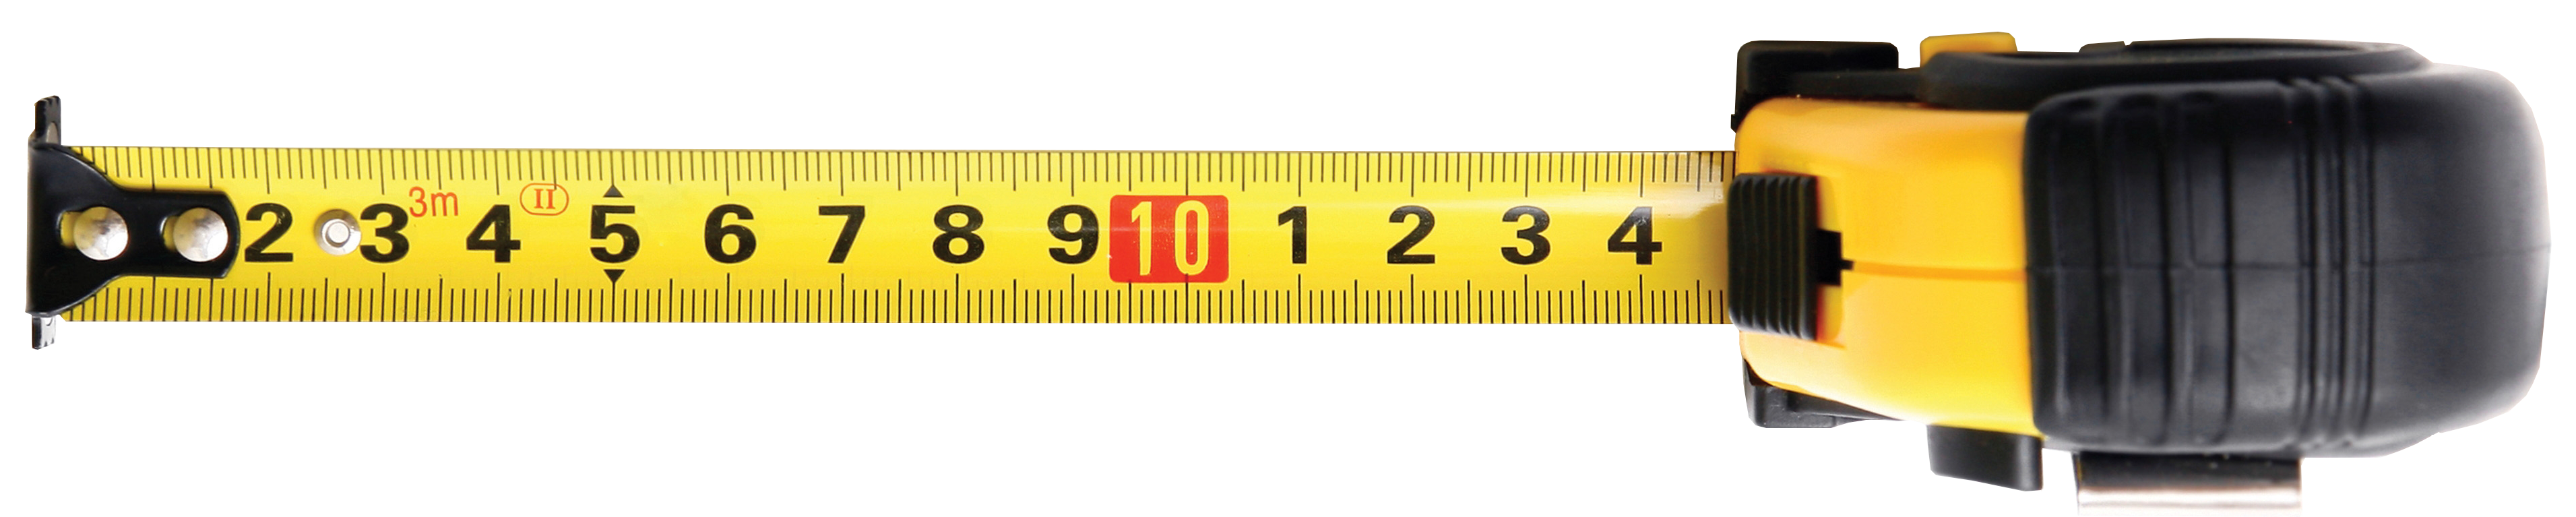 Measure tape PNG images free download.